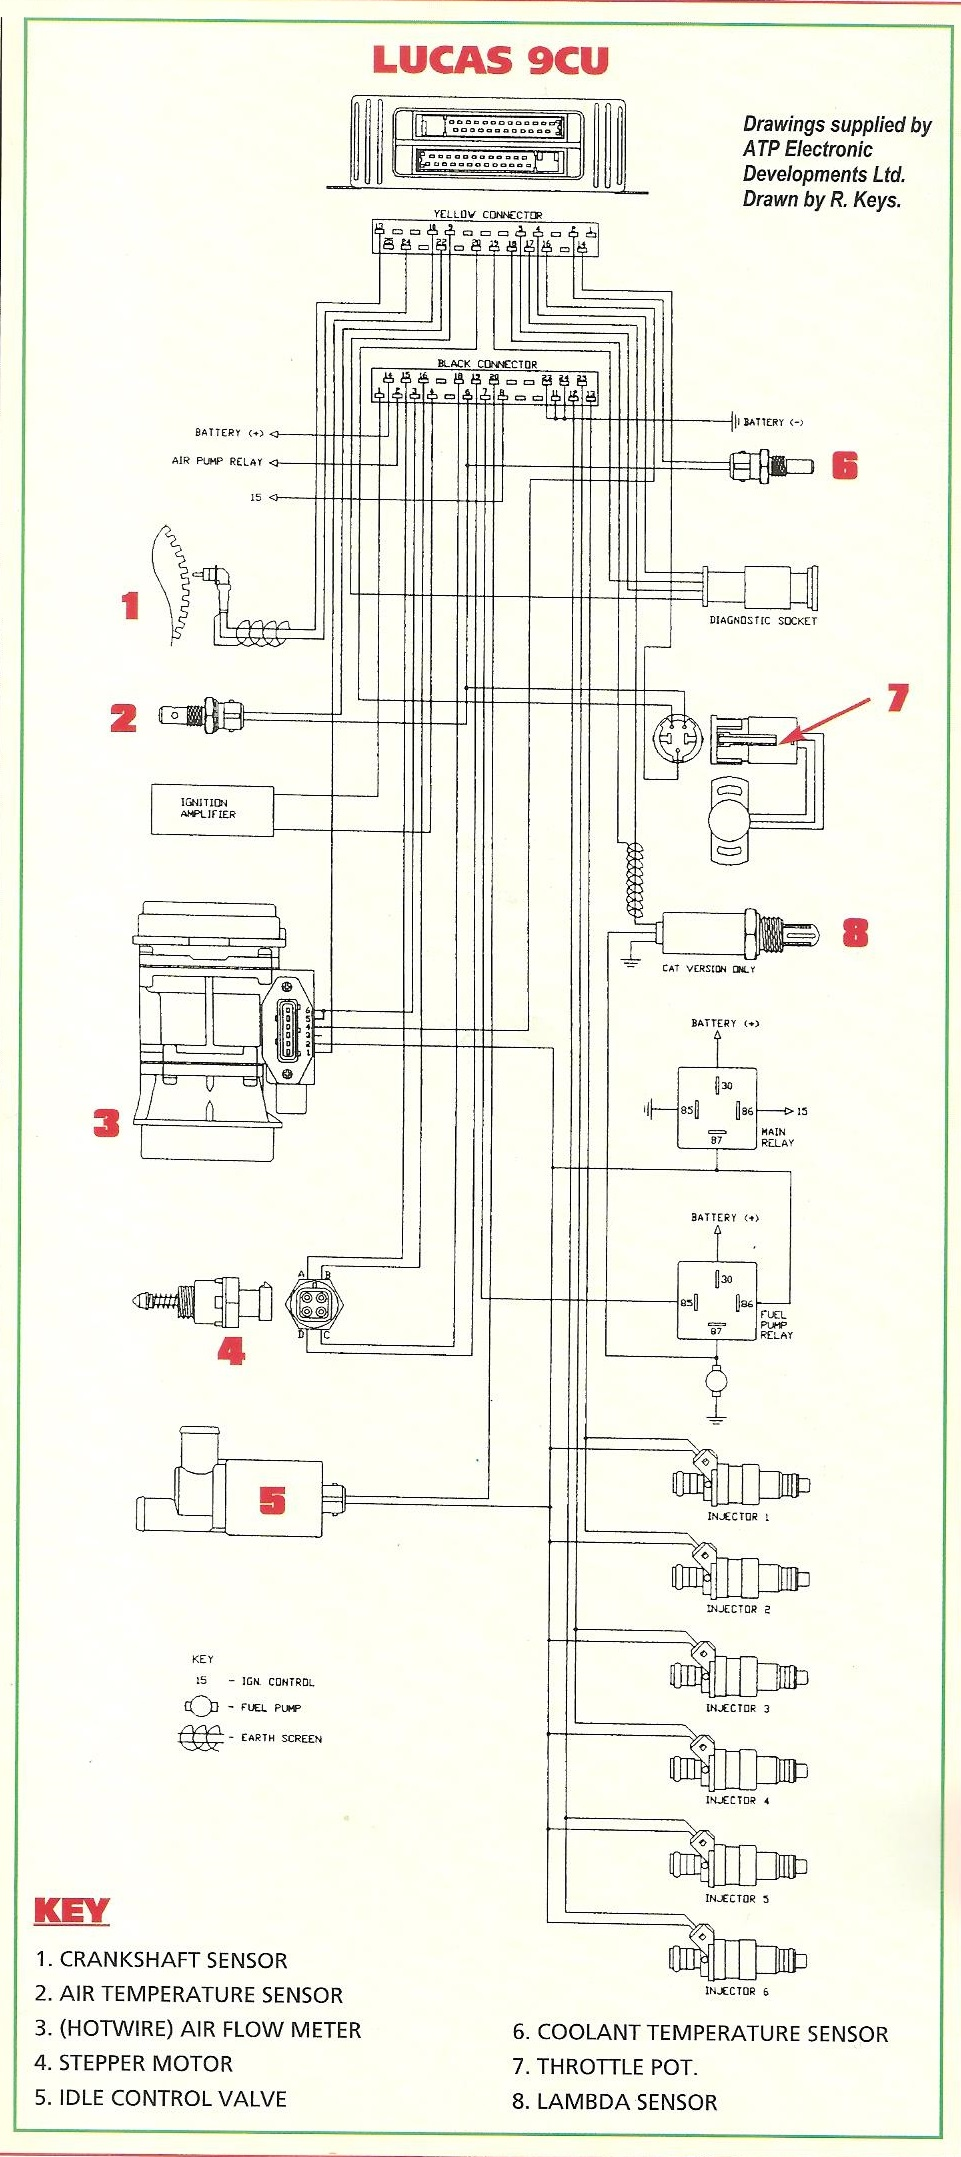 1984 Jaguar Wiring Harness - Schema Wiring Diagrams on